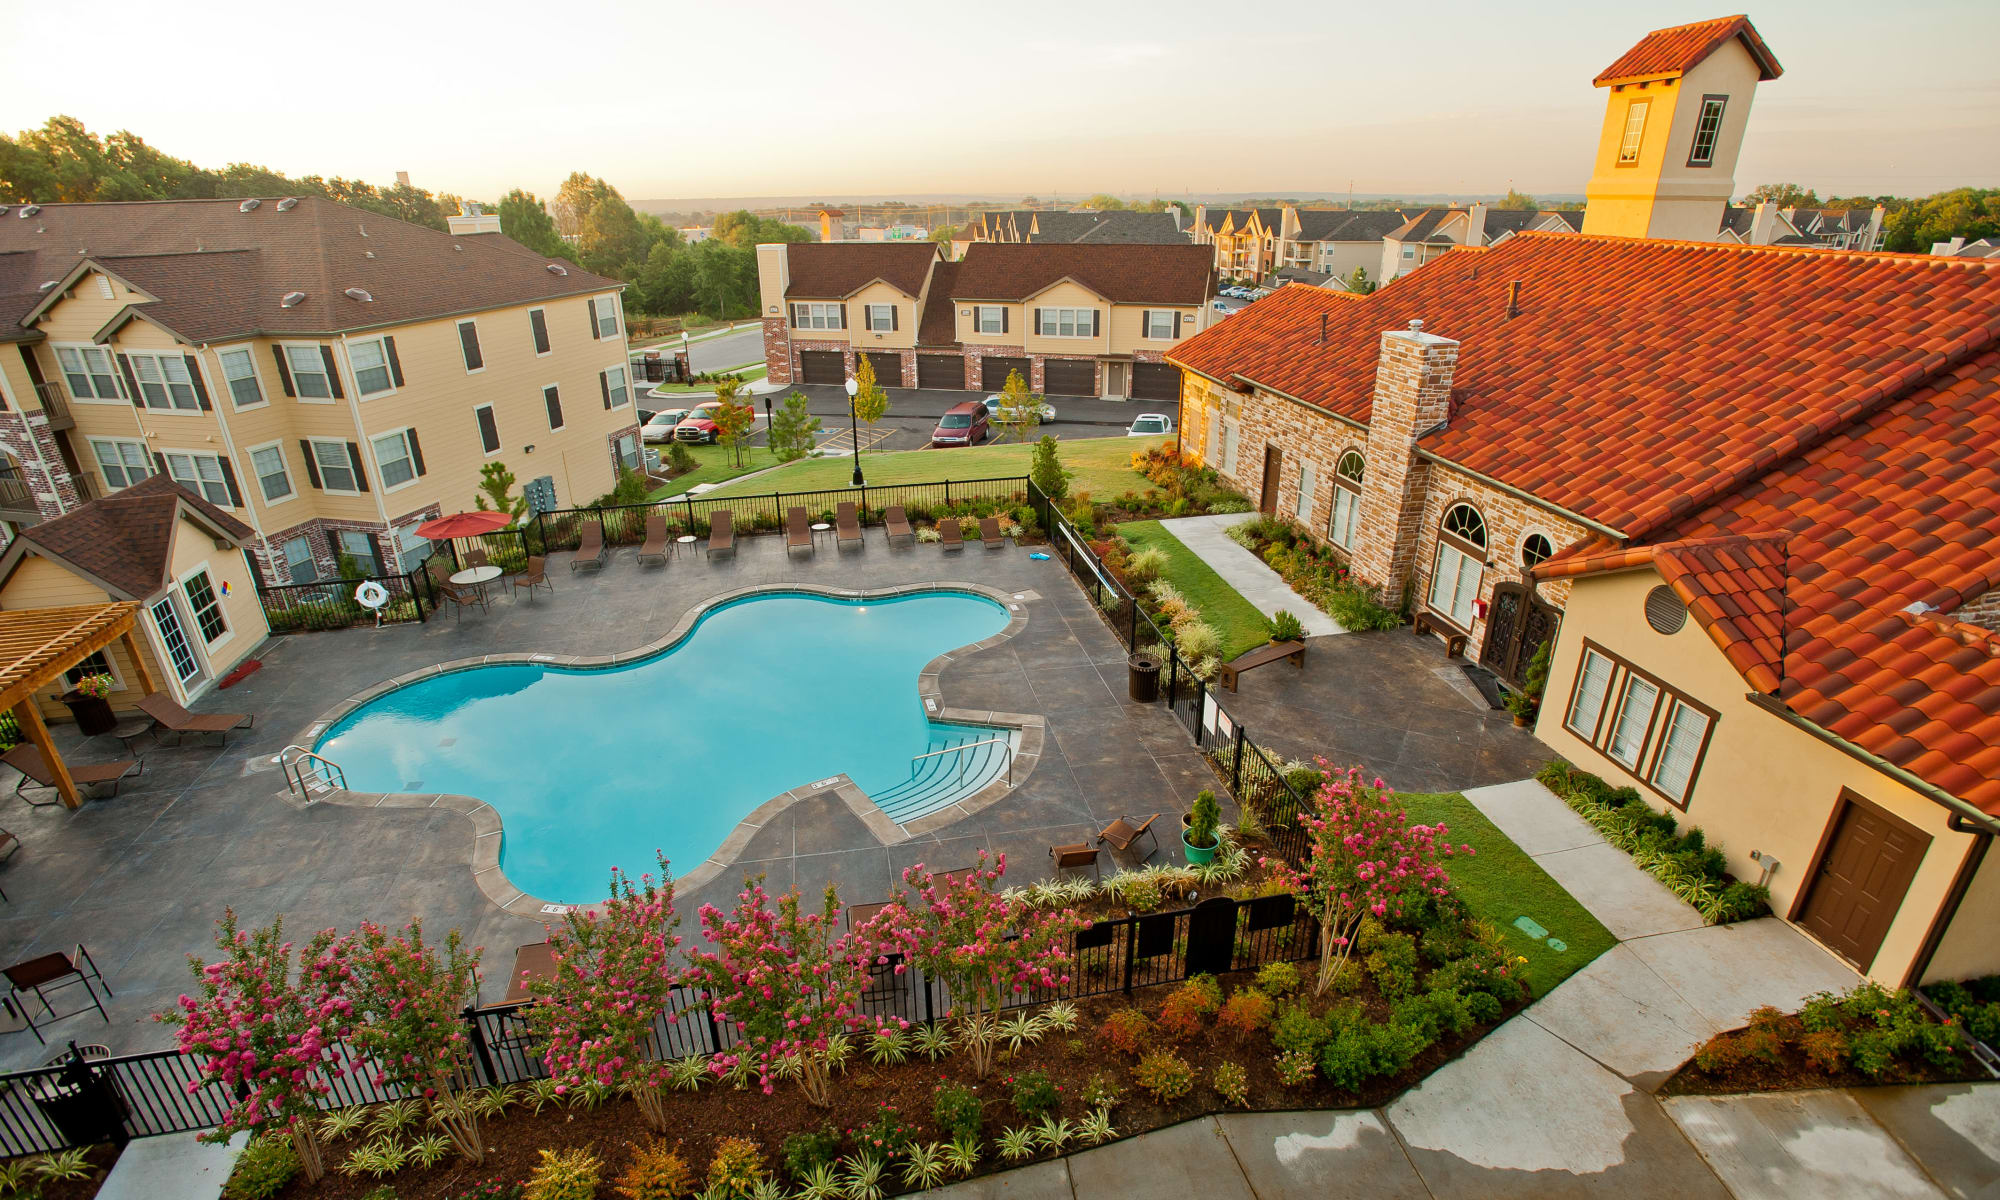 Tuscany Hills at Nickel Creek apartments in Tulsa, Oklahoma